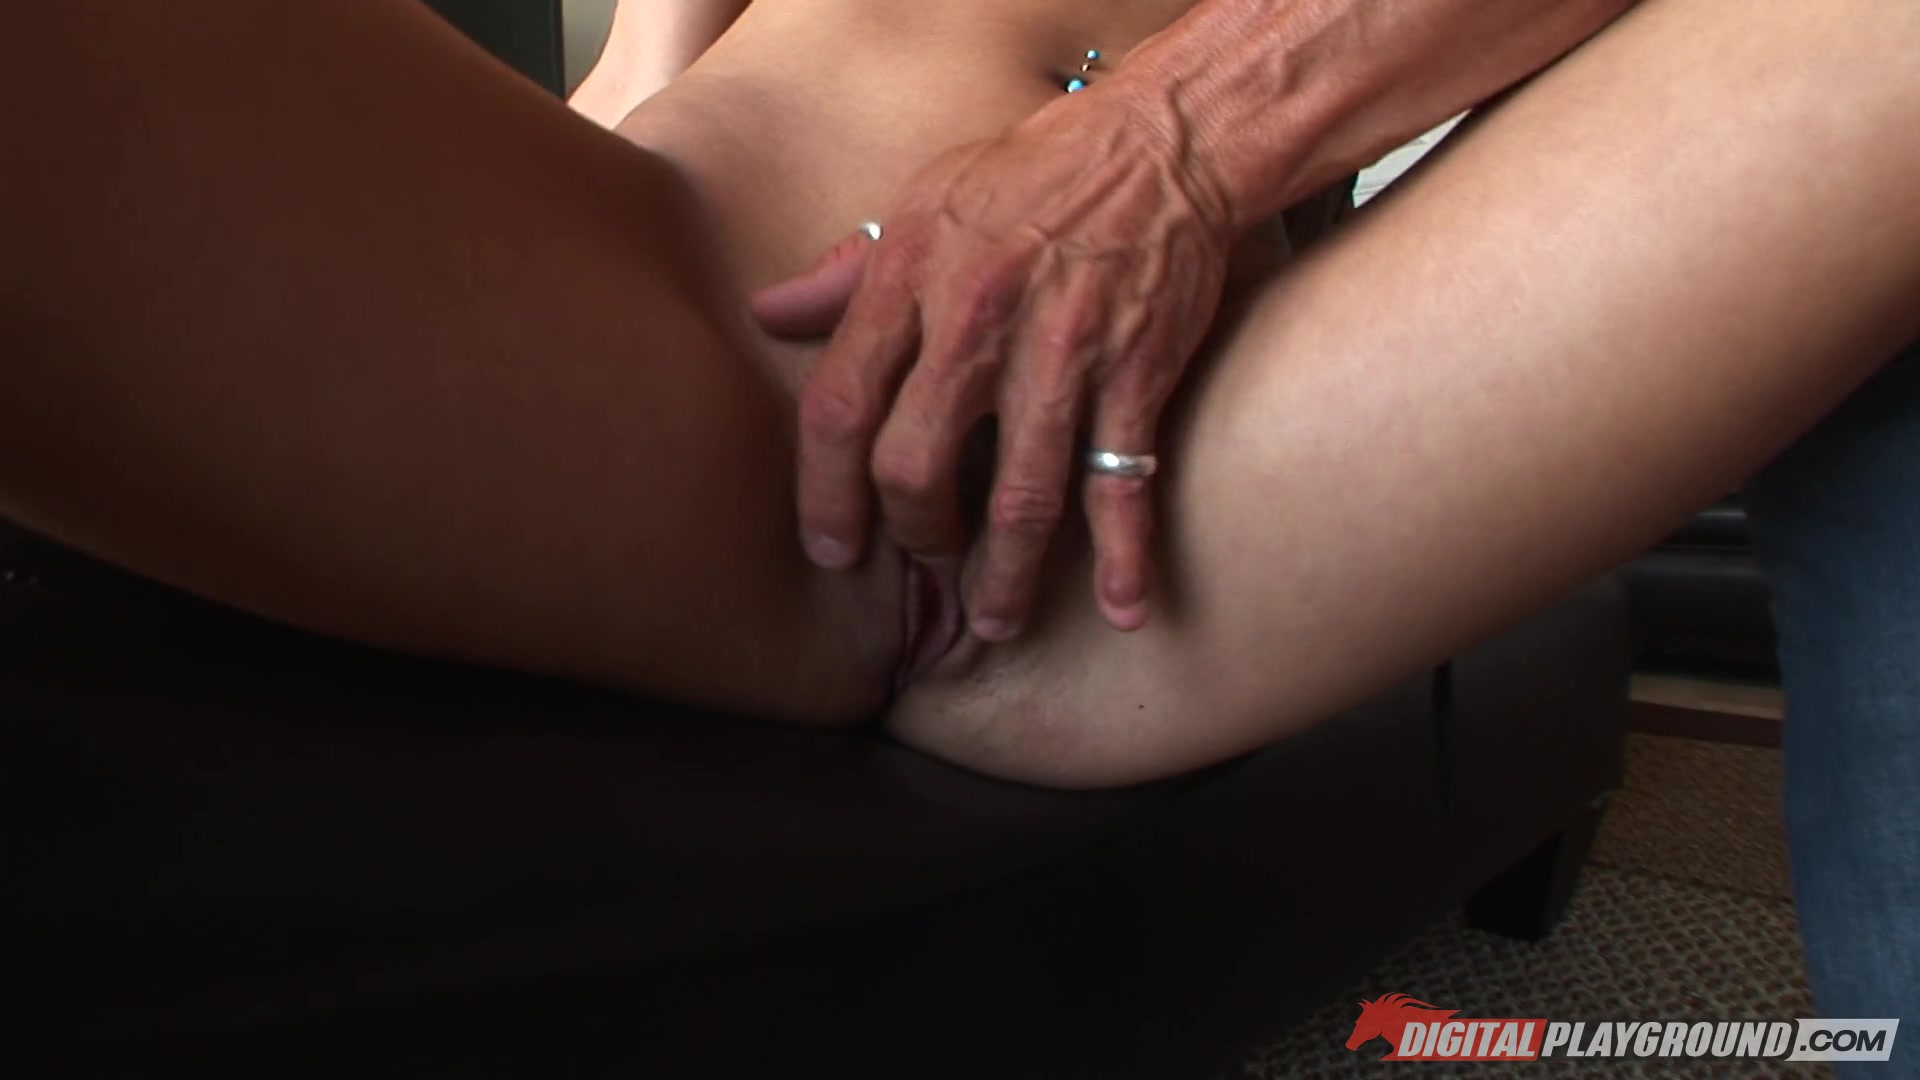 Alex Chance jacks a Dude off with her Tits at Pool Free